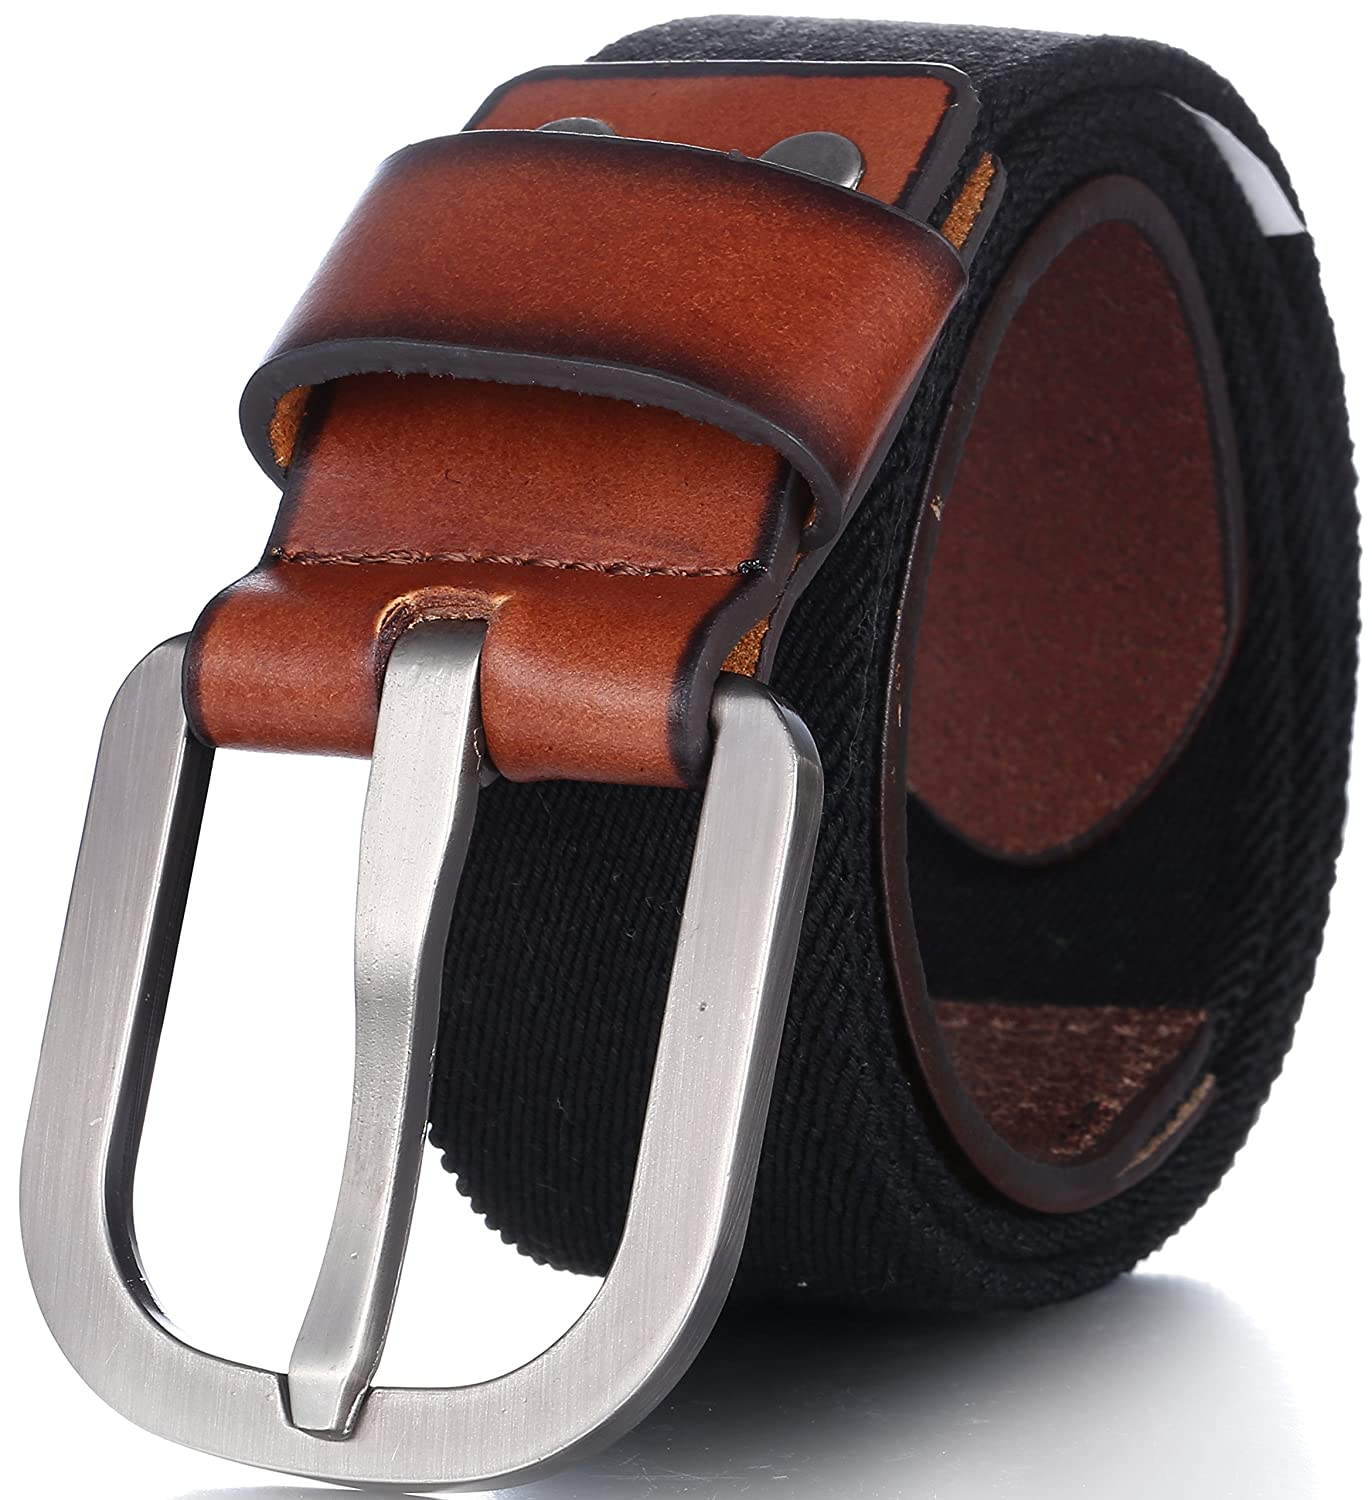 by Marino Ave Adjustable Stretch Strap Leather Front Men/'s Elastic Belt